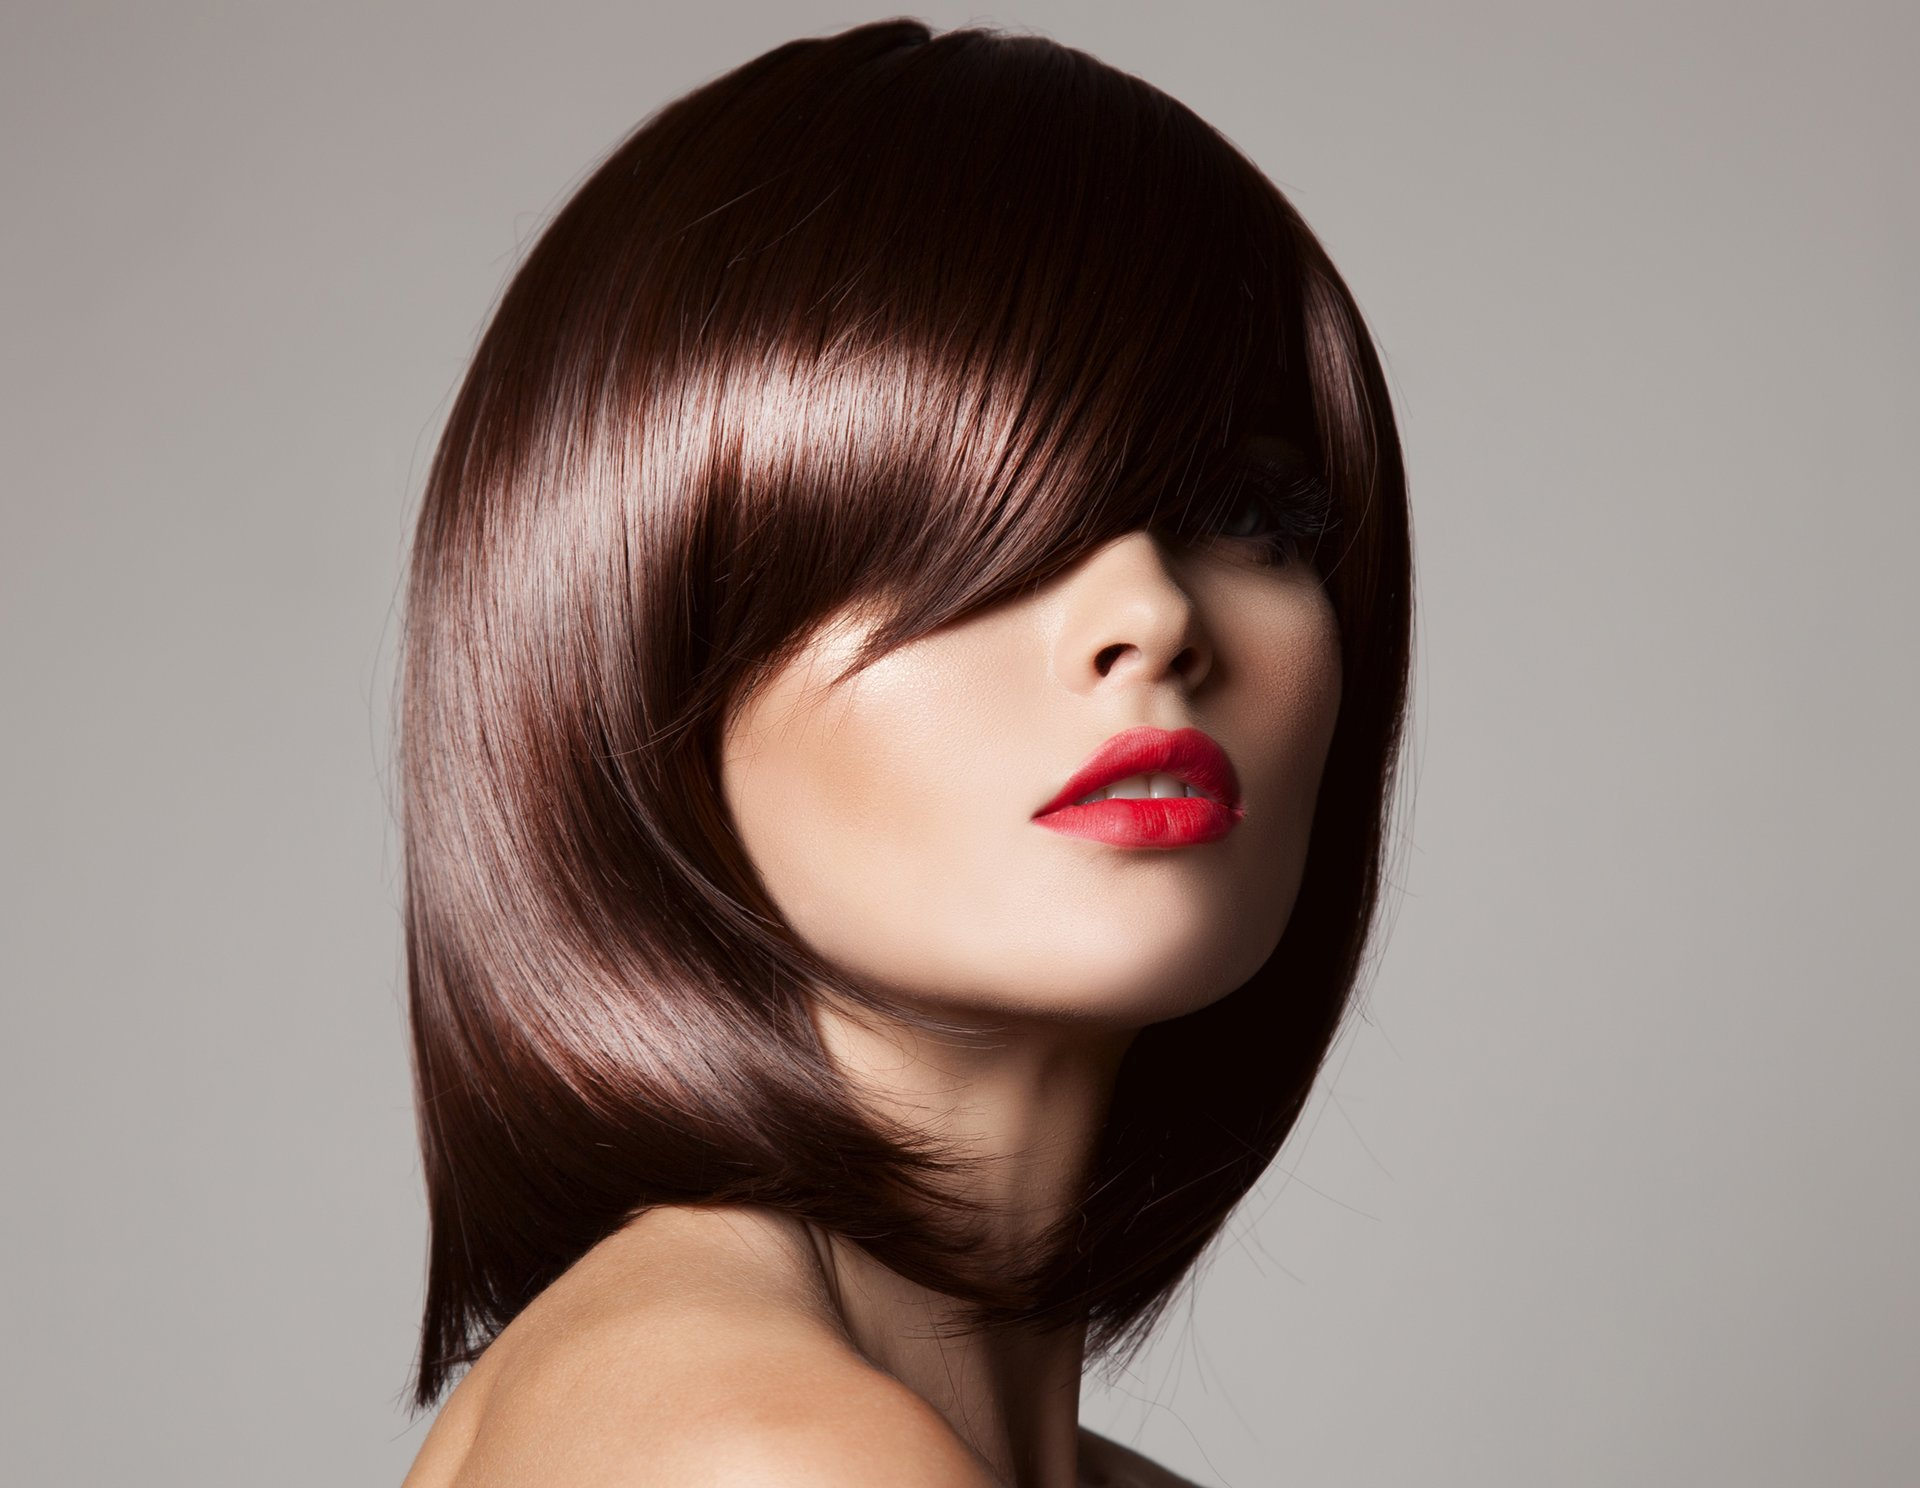 model girl haircut hair make-up background